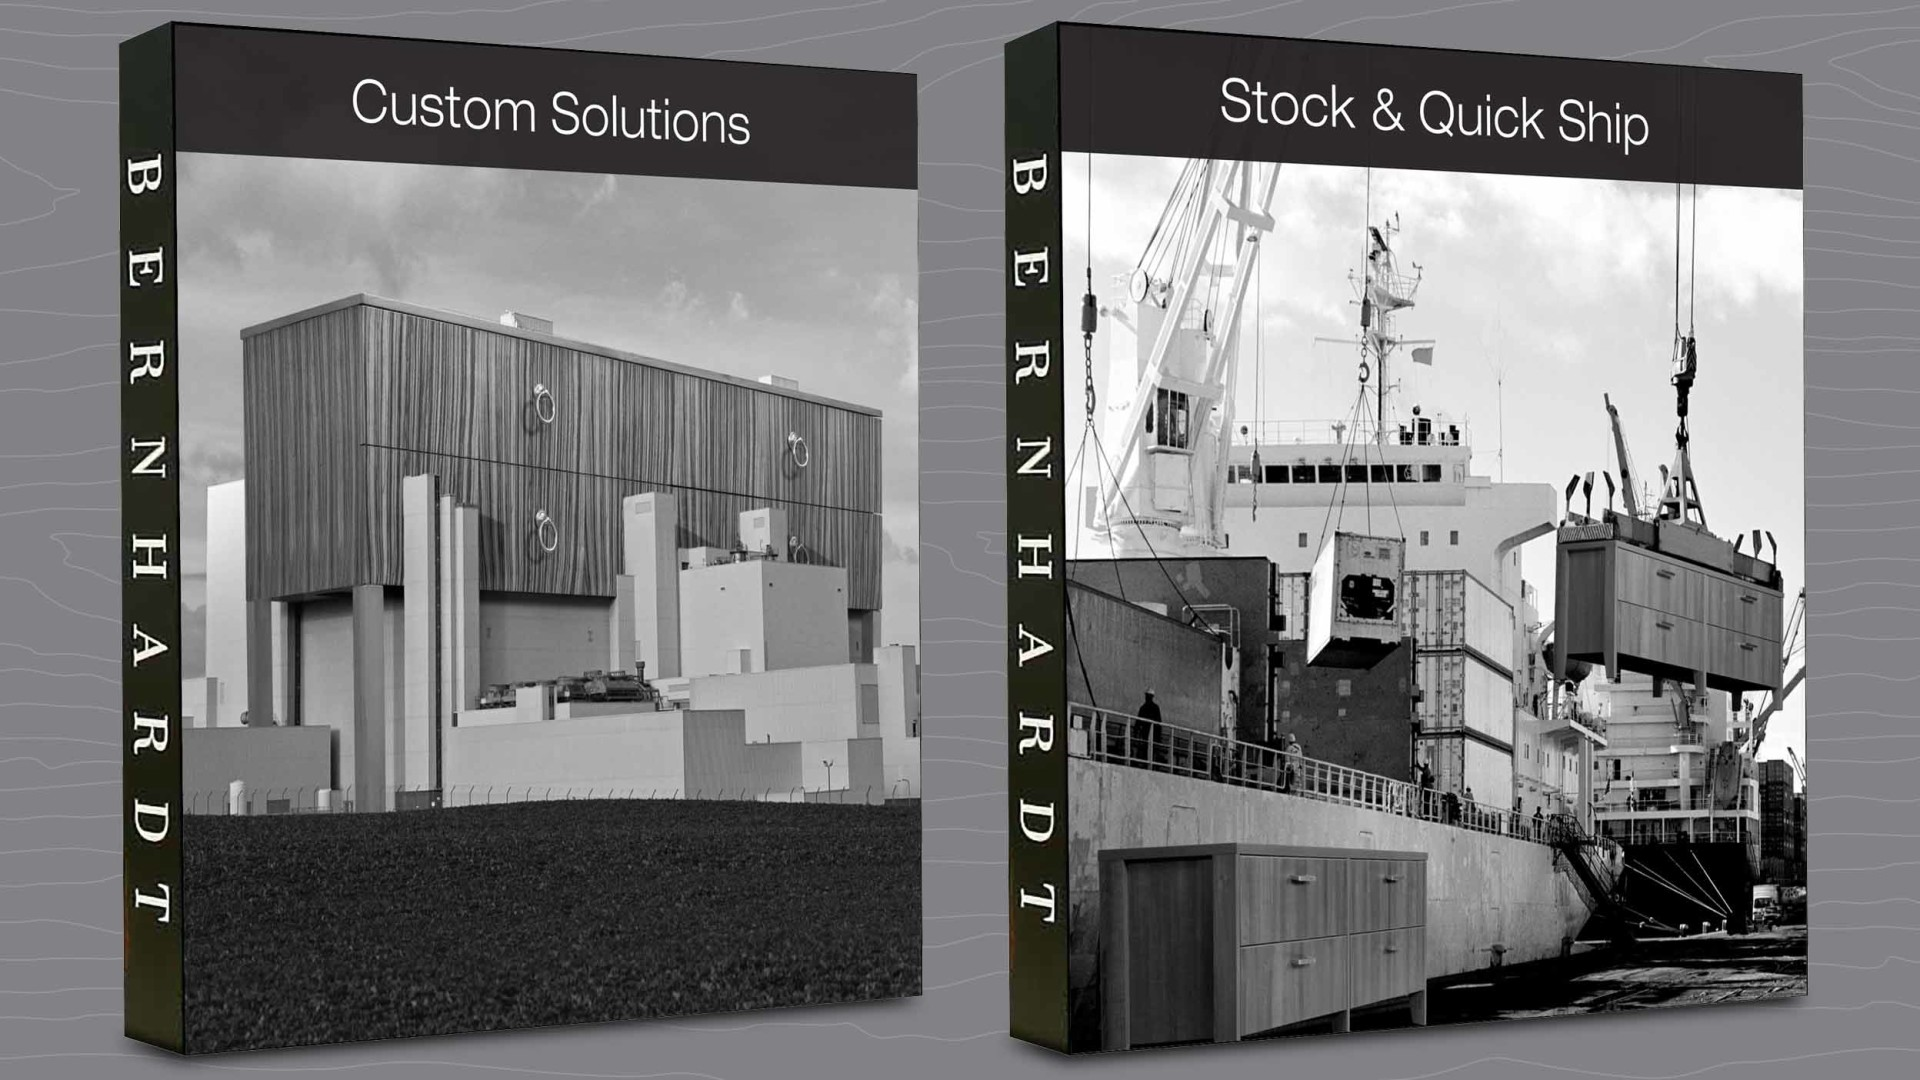 Custom Solutions and Stock & Ship Display Walls